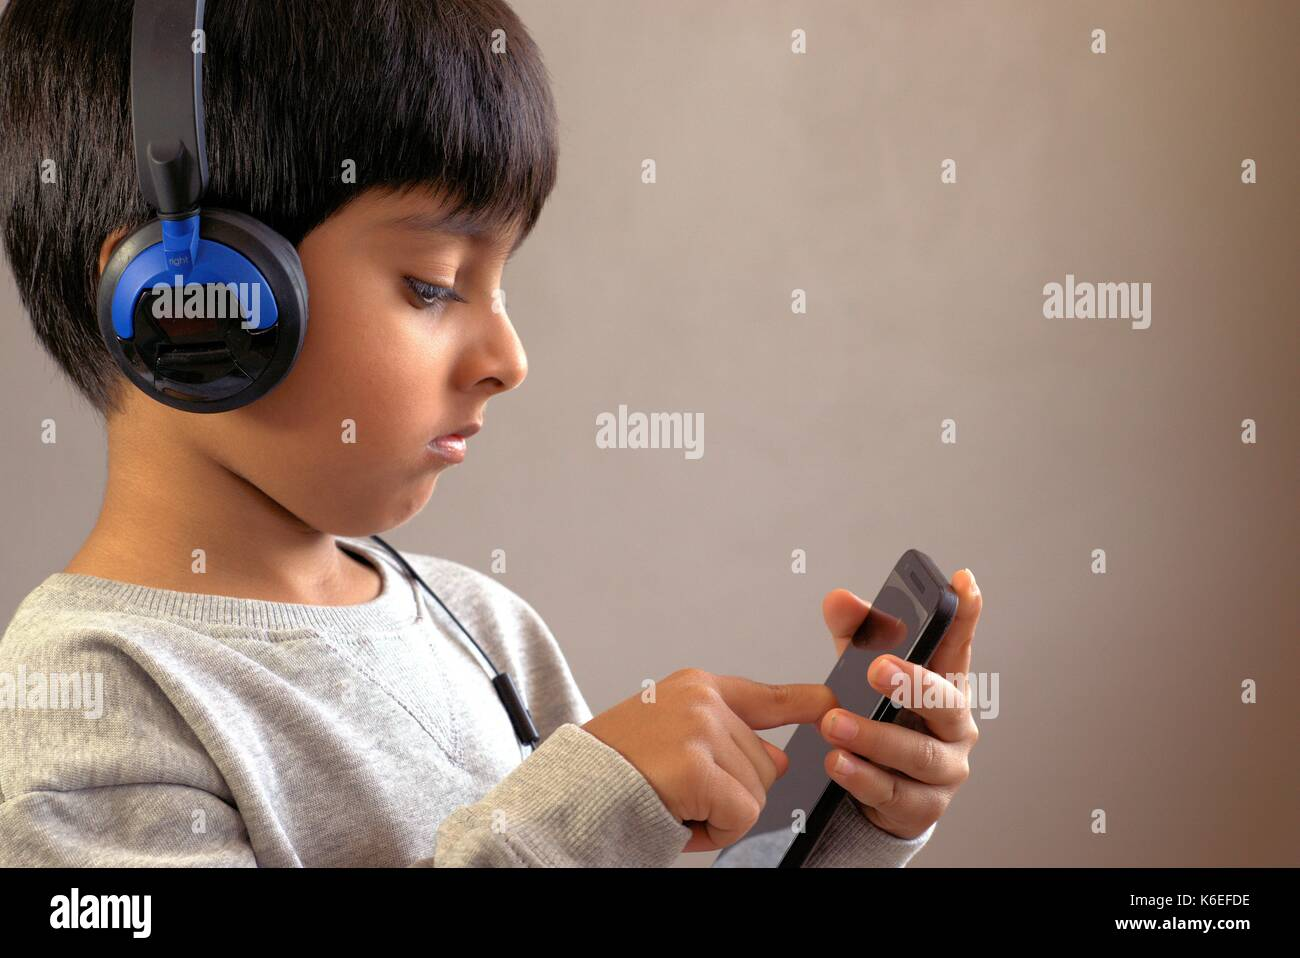 Child using smart phone. Kid wearing headphones looking at smartphone. Kid tapping on touchscreen. - Stock Image